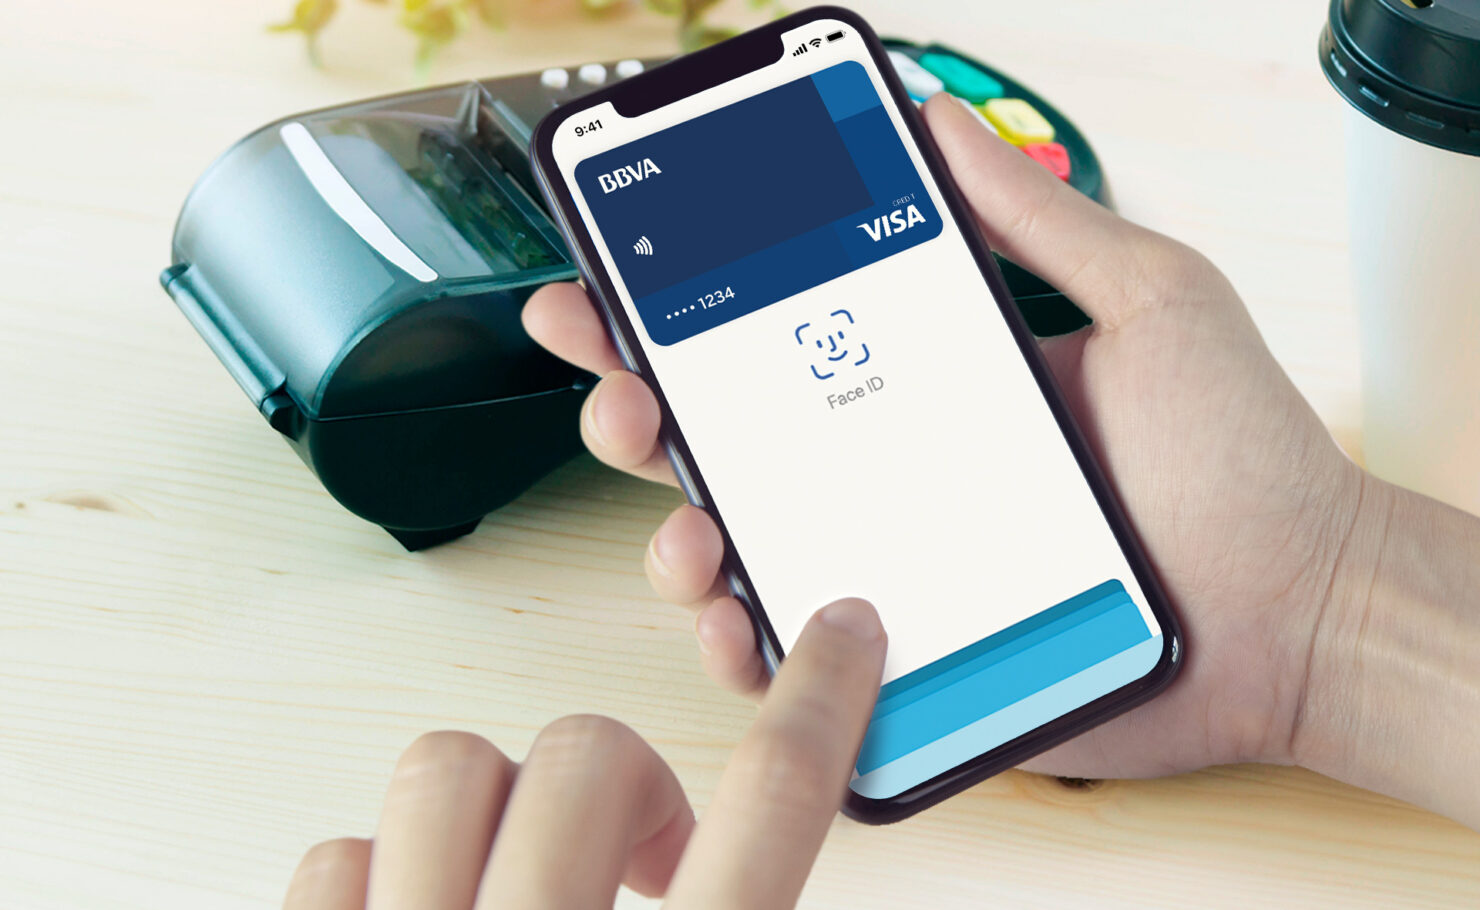 Apple to Be Charged With Anti-Competitive Behavior - iPhone's NFC Chip Unfairly Restricts Other Payment Services